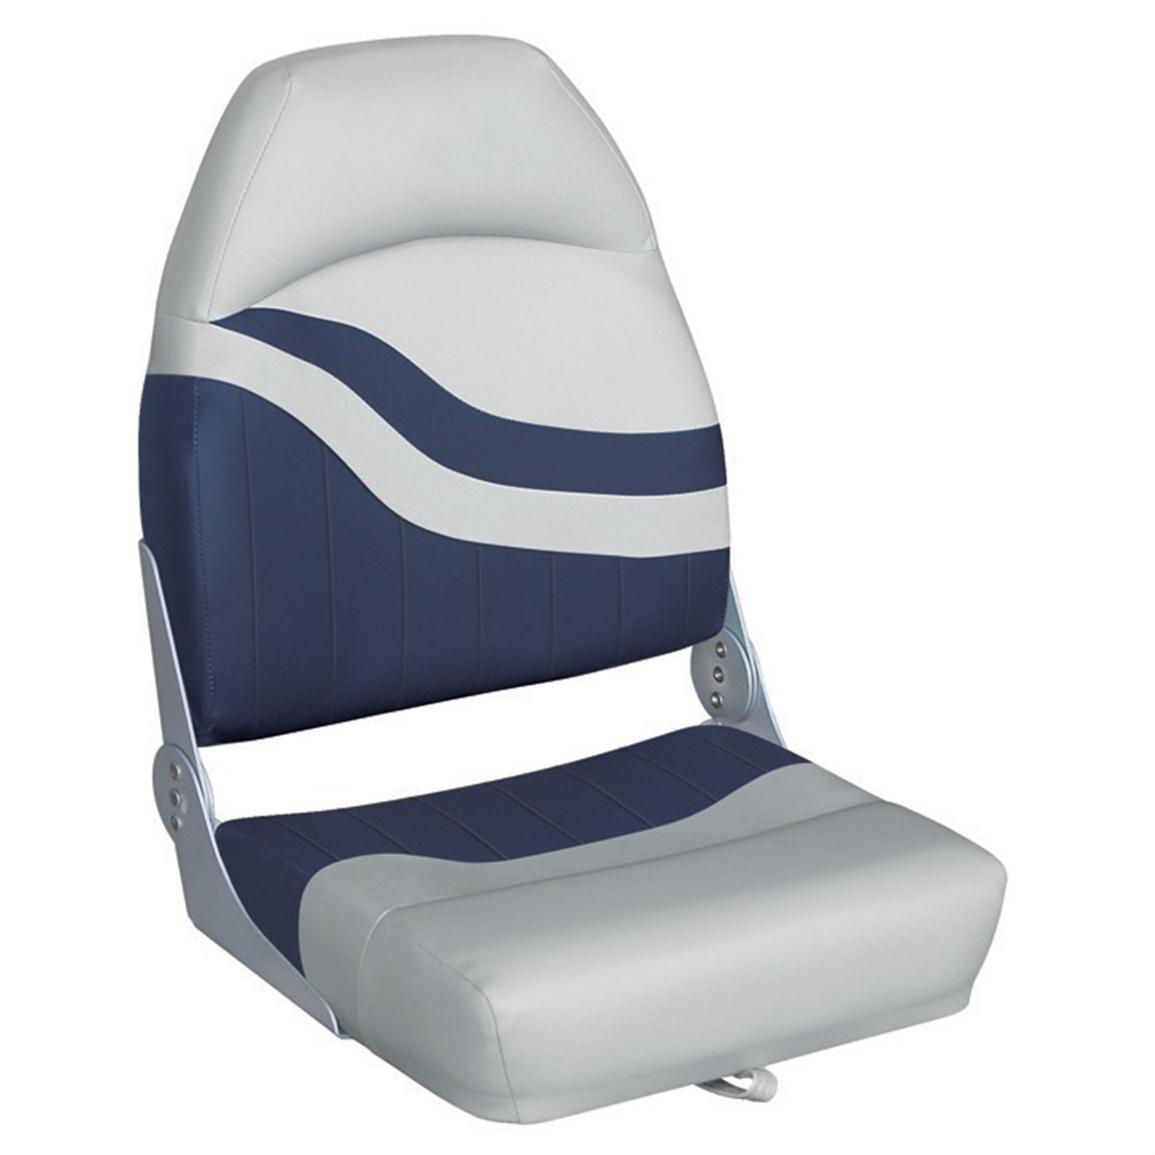 Wise® Weekender Series Boat Seat, Grey / Navy